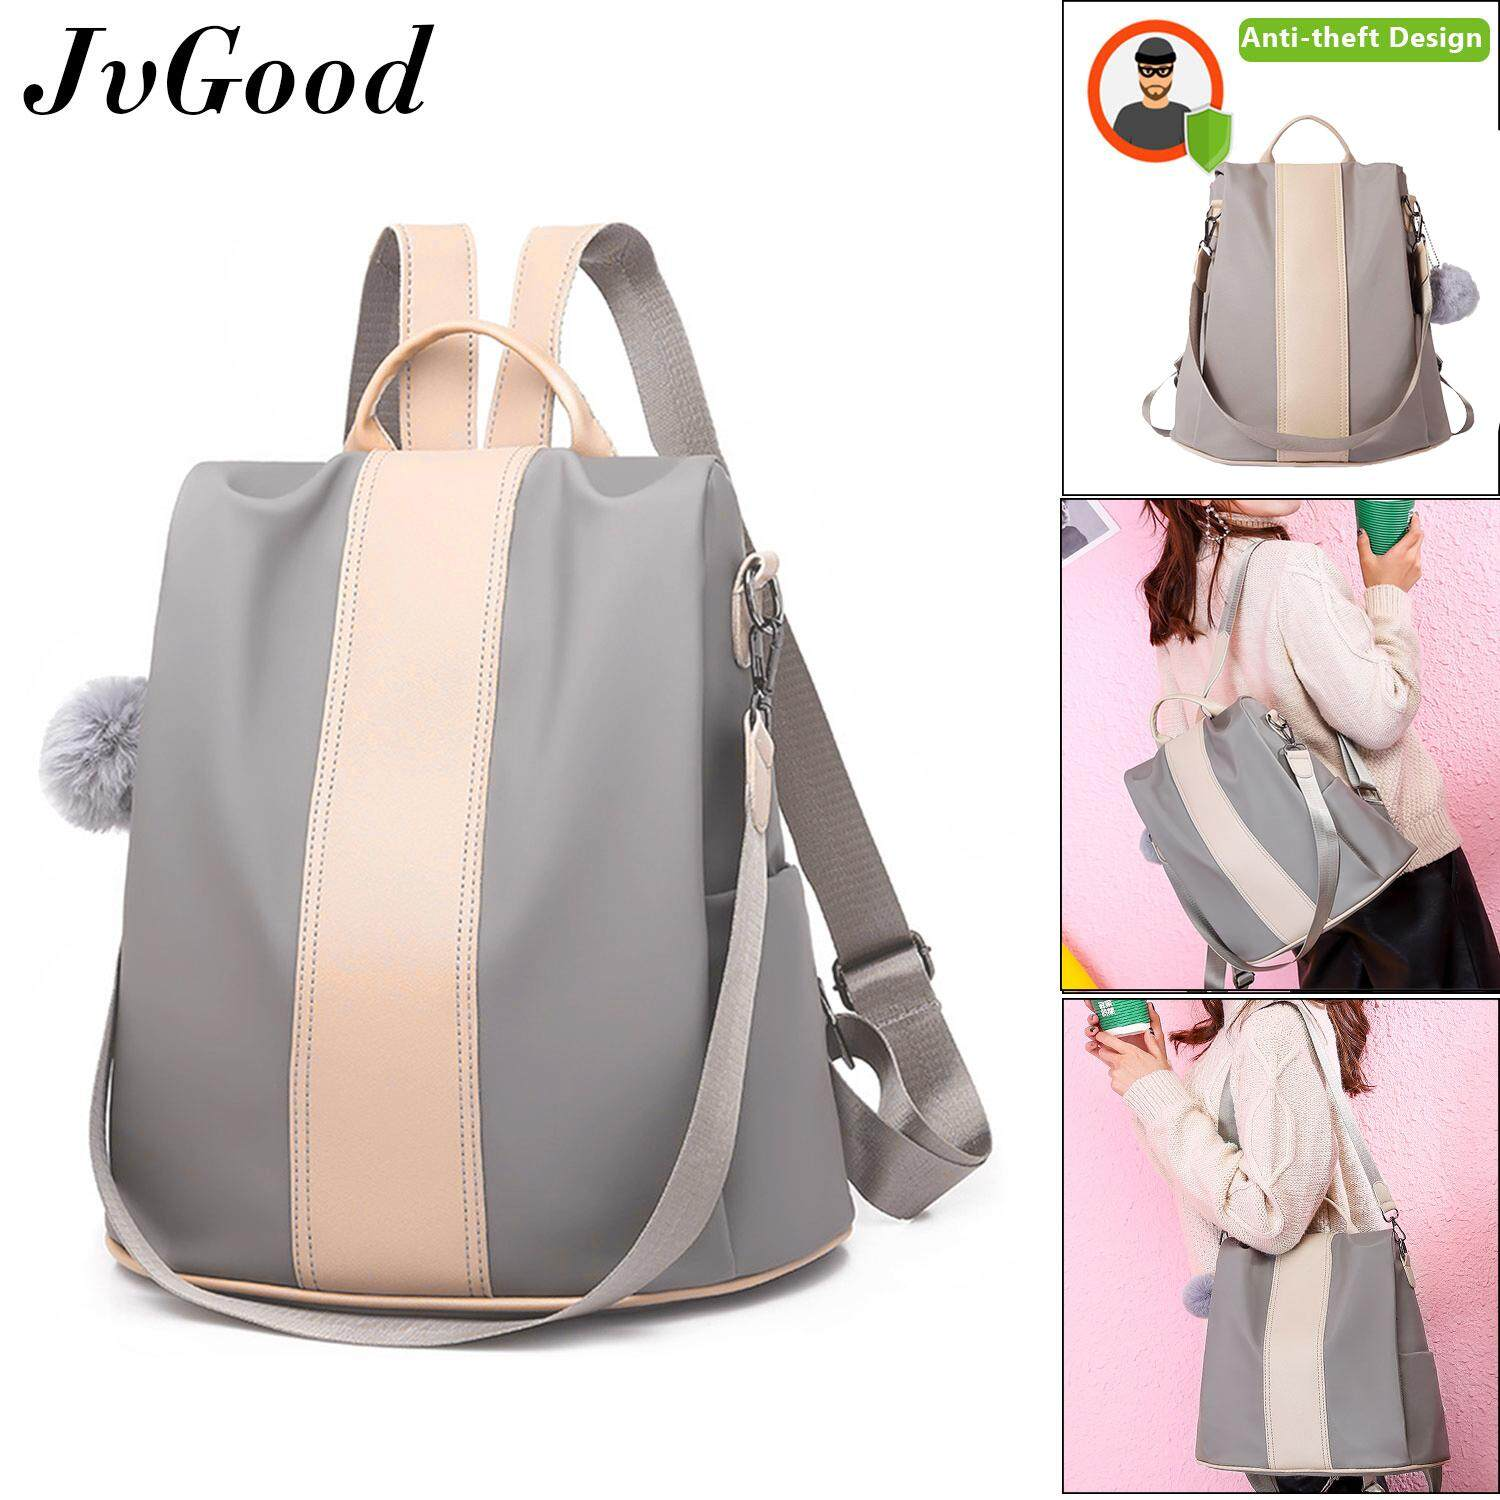 e166a71aaf JvGood Shoulder Backpacks Women Korean Style Sling Bag Women Bag School Bag  Waterproof Oxford Daypack Lightweight